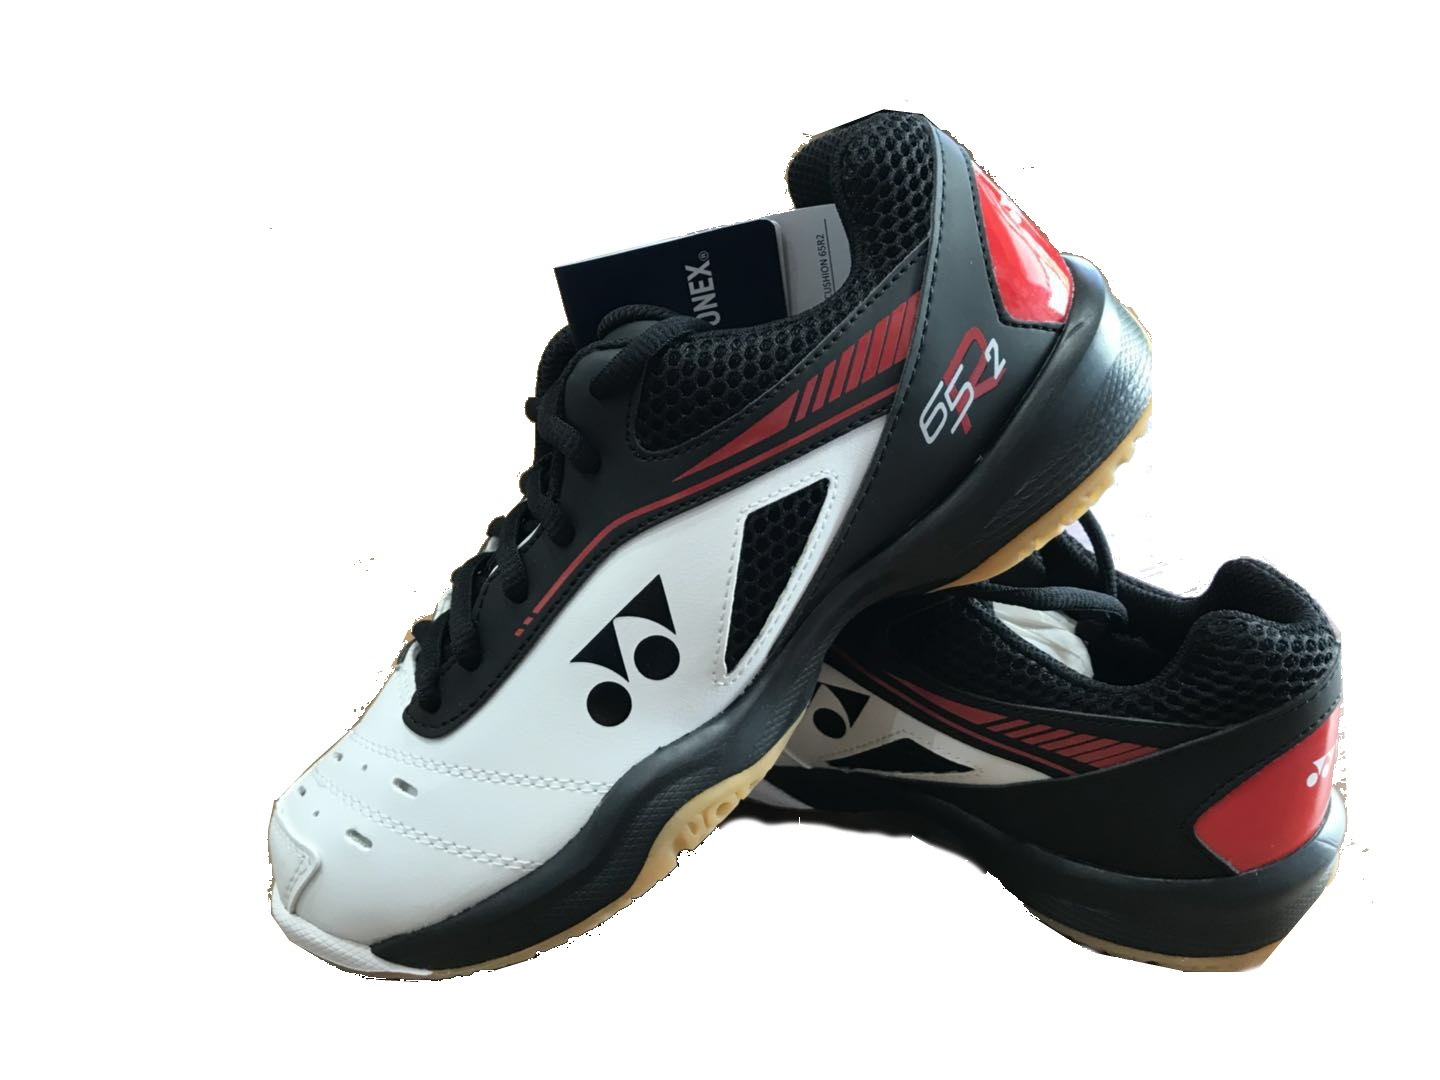 Yonex Power Cushion SHB 65 R2